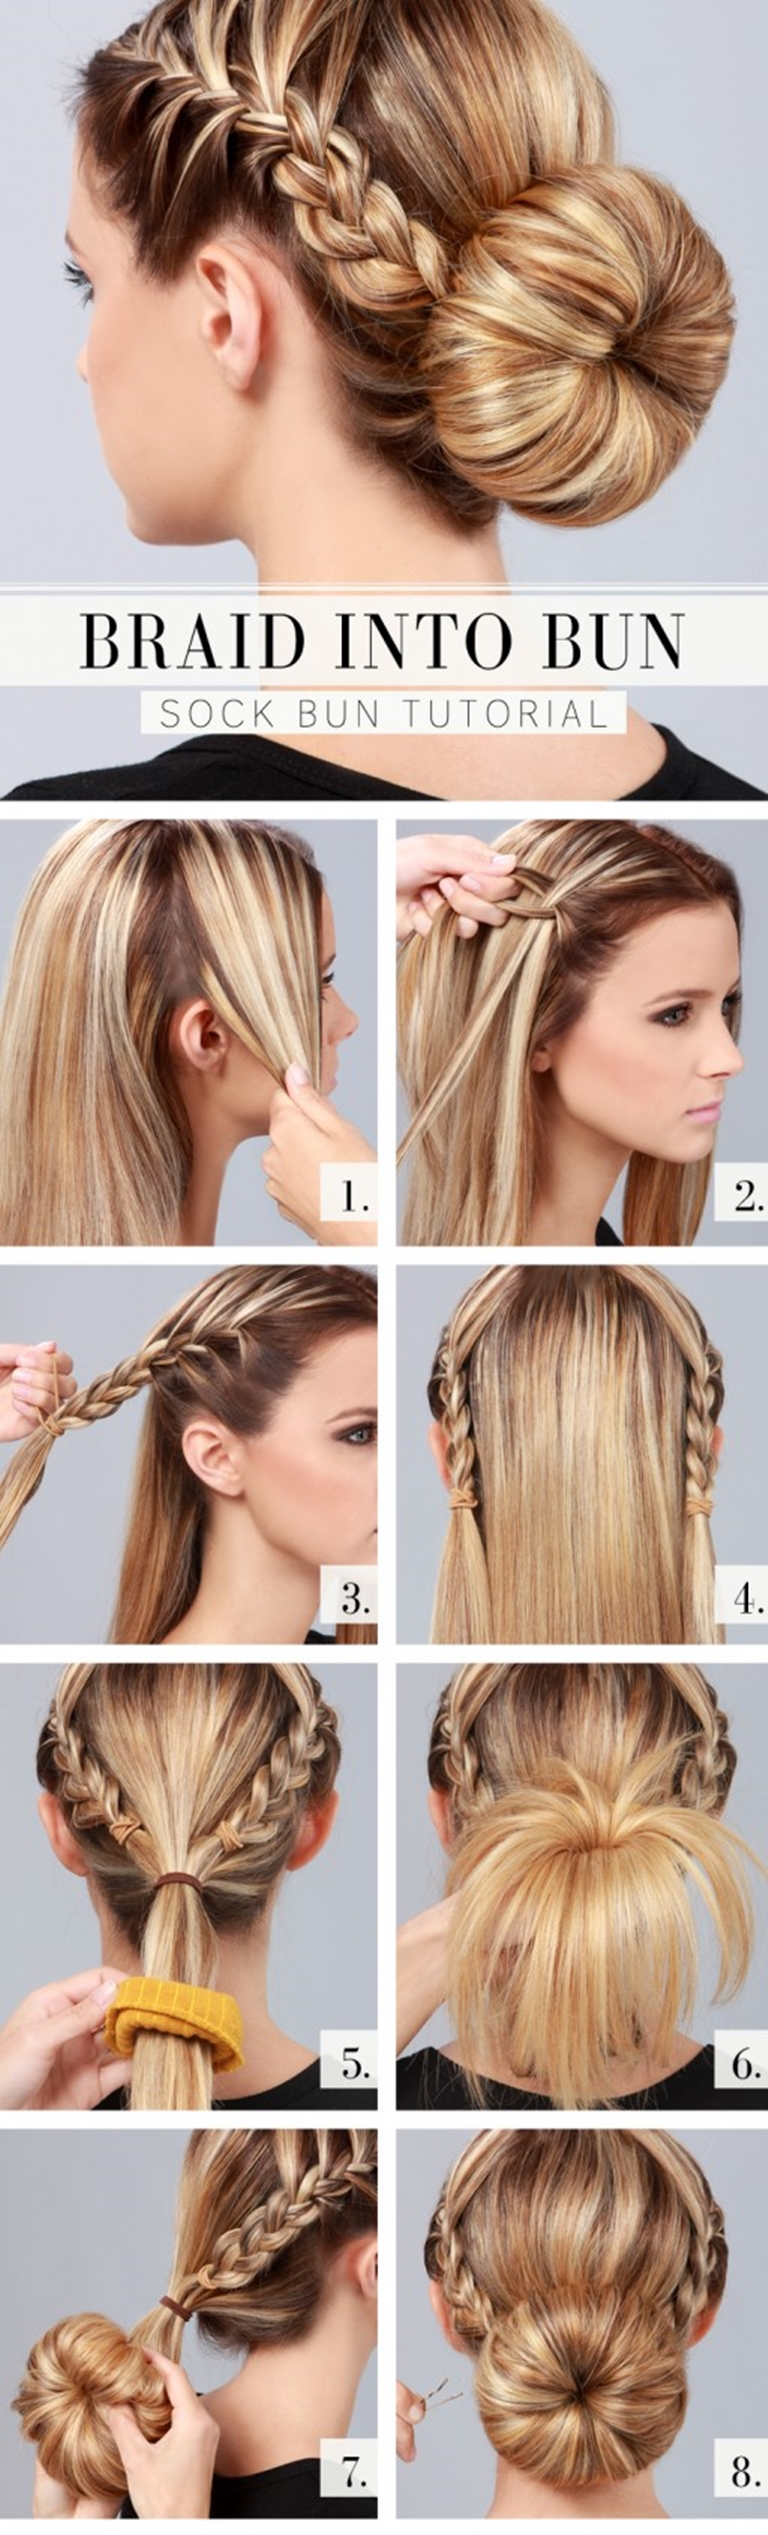 braid into bun hair style L Wonderful DIY braid into bun hairstyle